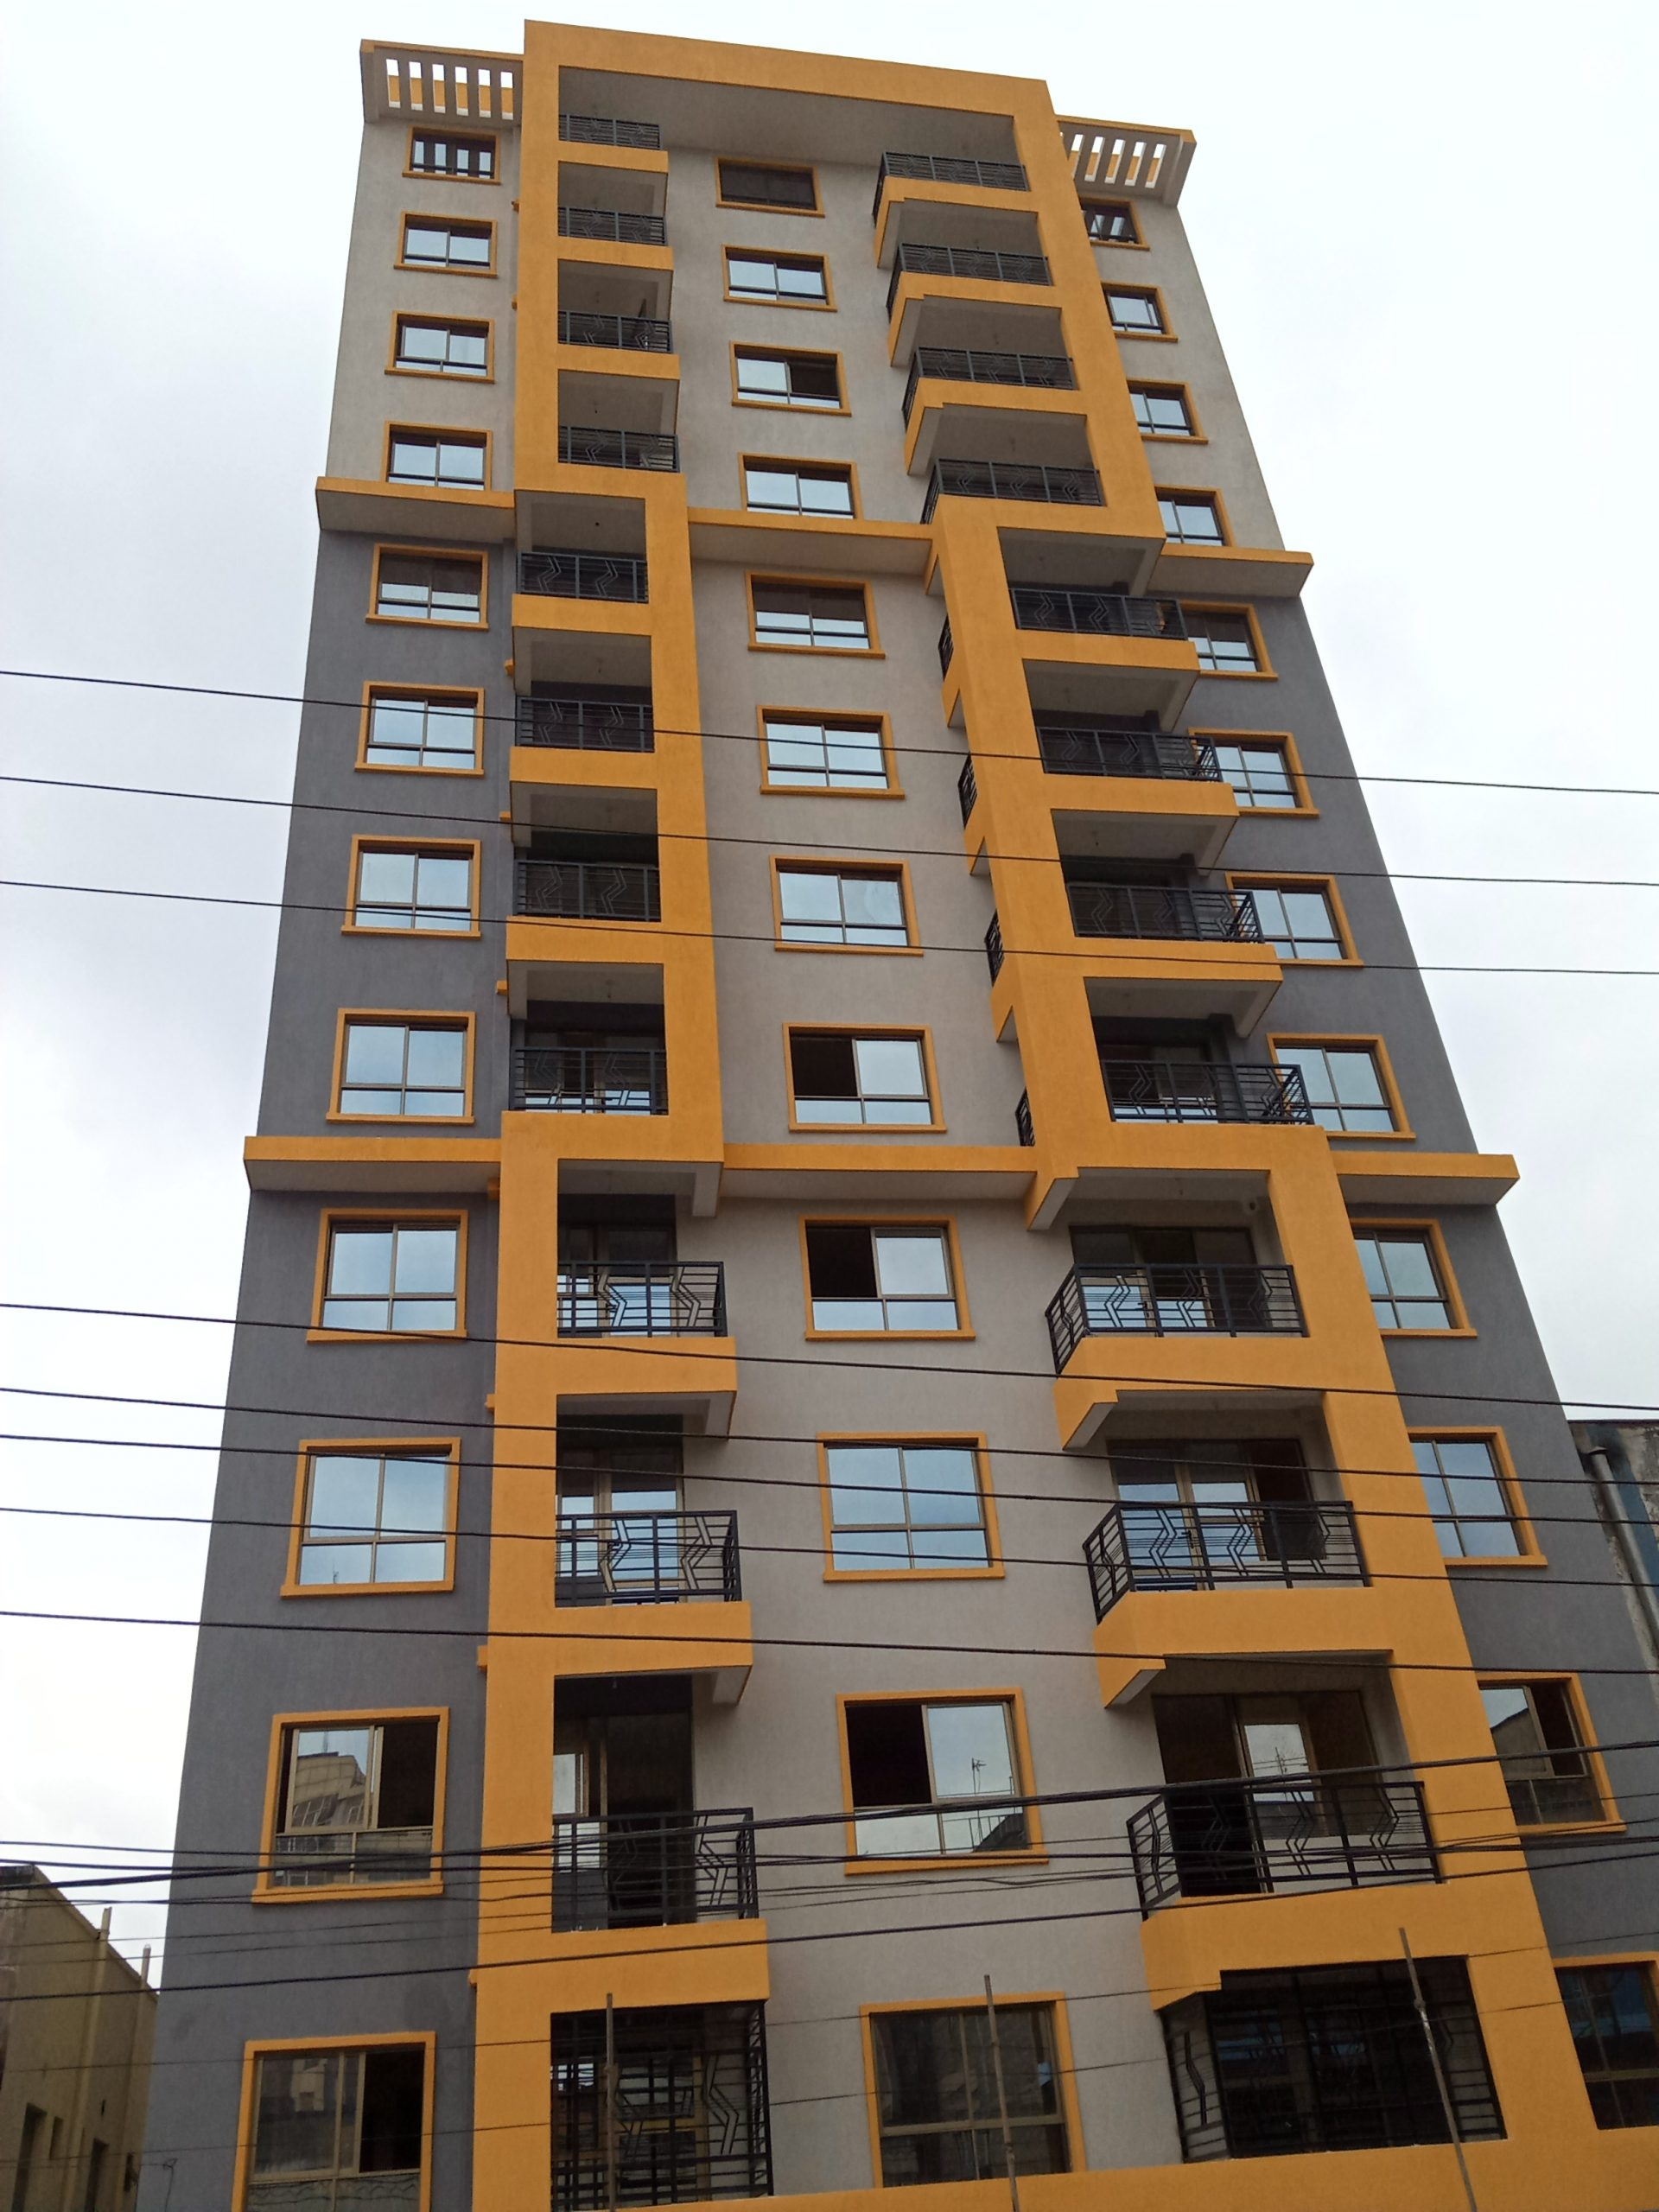 City View Suites, For Sale in Ngara, One Bedroom Apartment